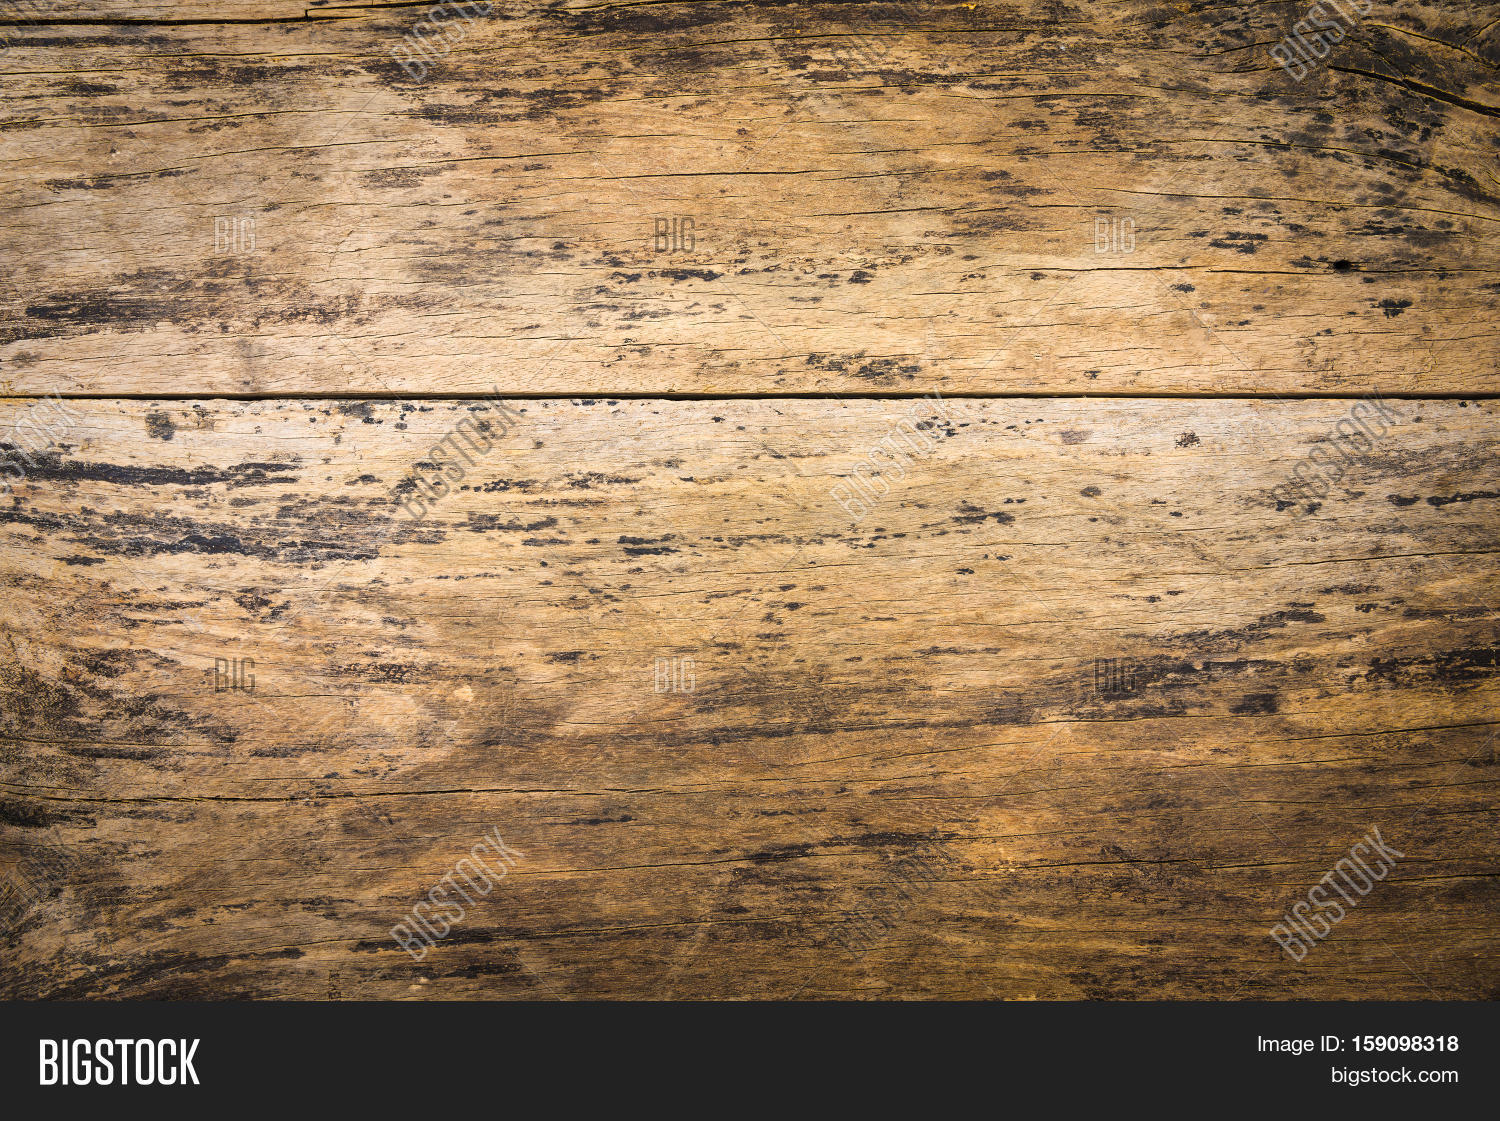 old wood texture/ wood texture. wood background. wood texture